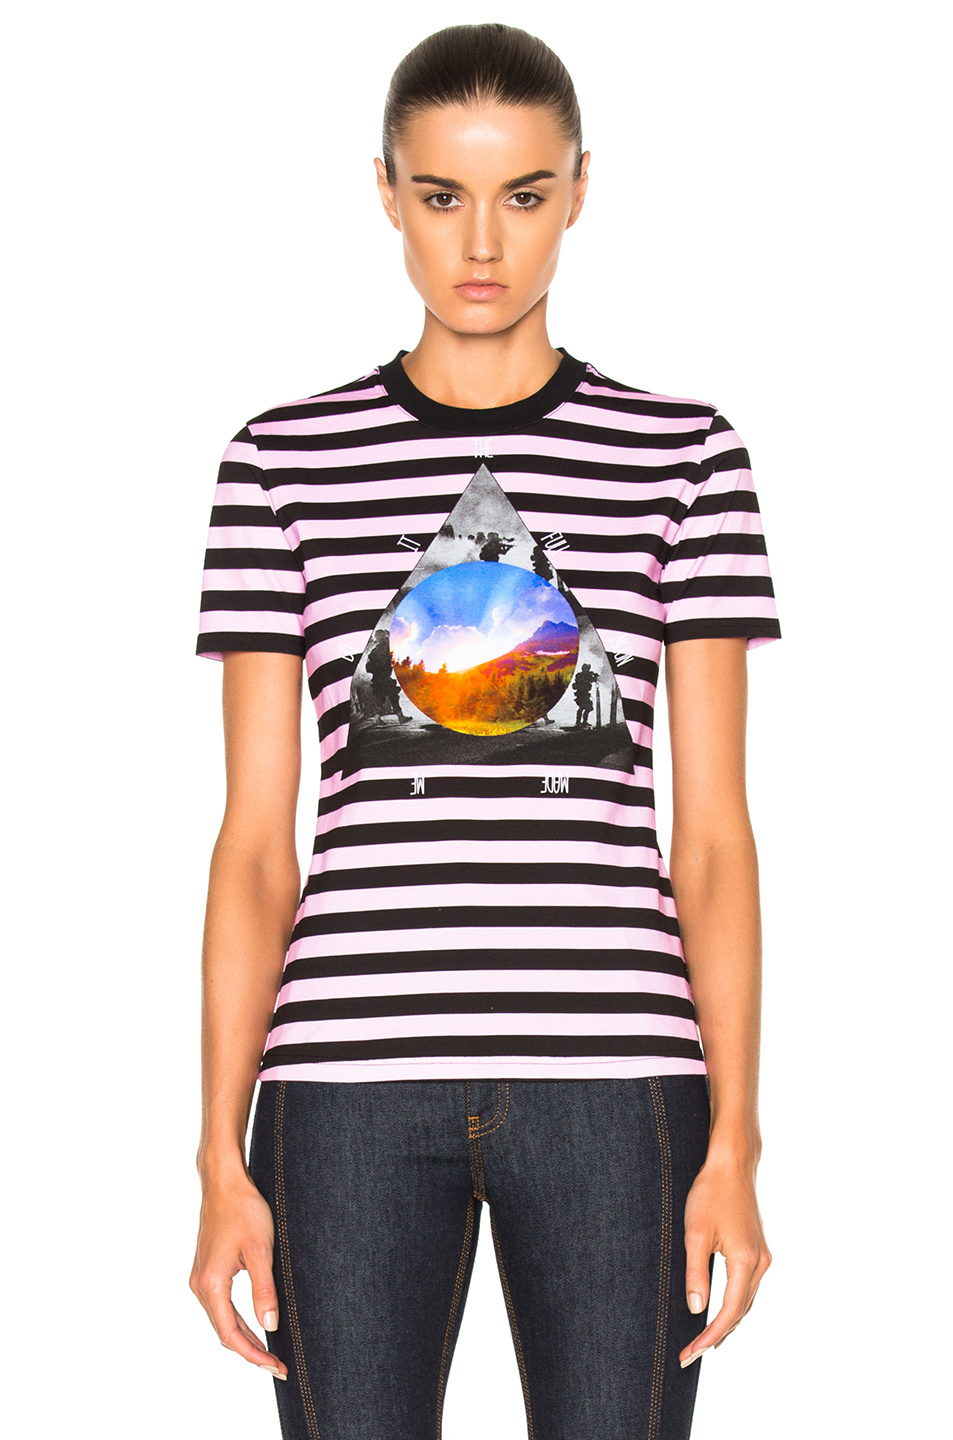 Givenchy Striped Graphic Tee in Black,Pink,Stripes